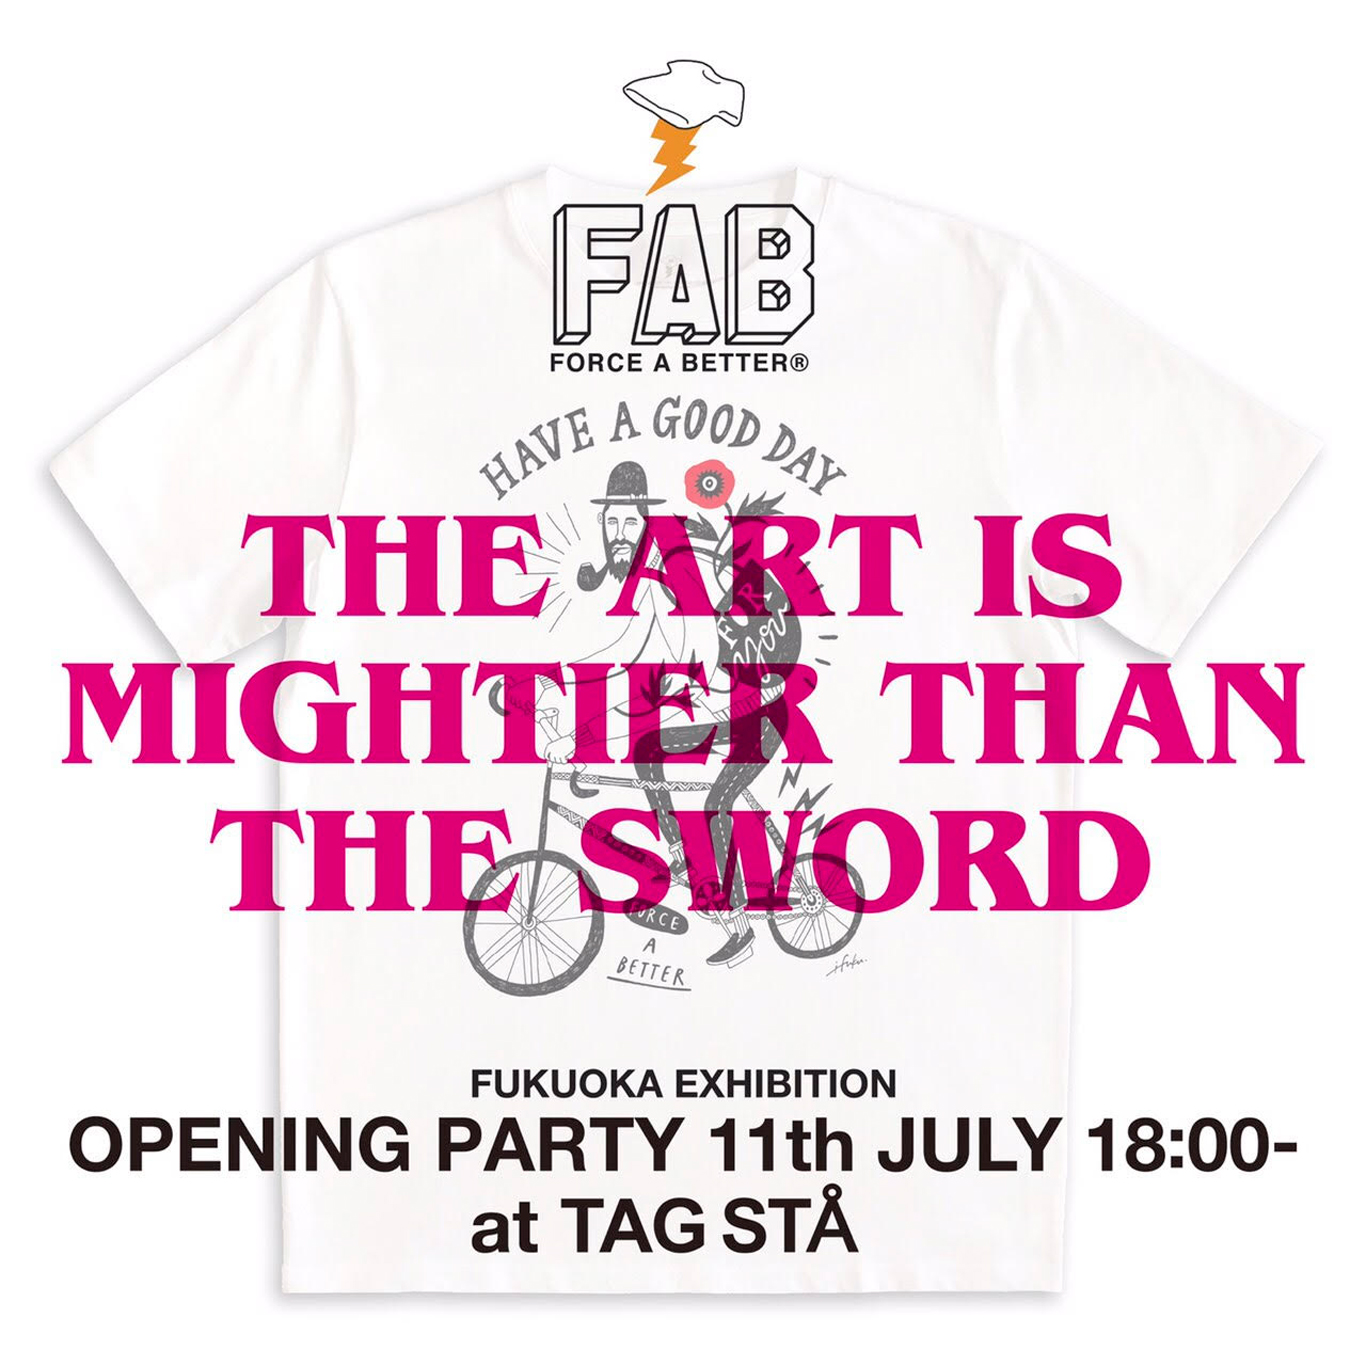 tagsta-201907-The ART is mightier than the sword2